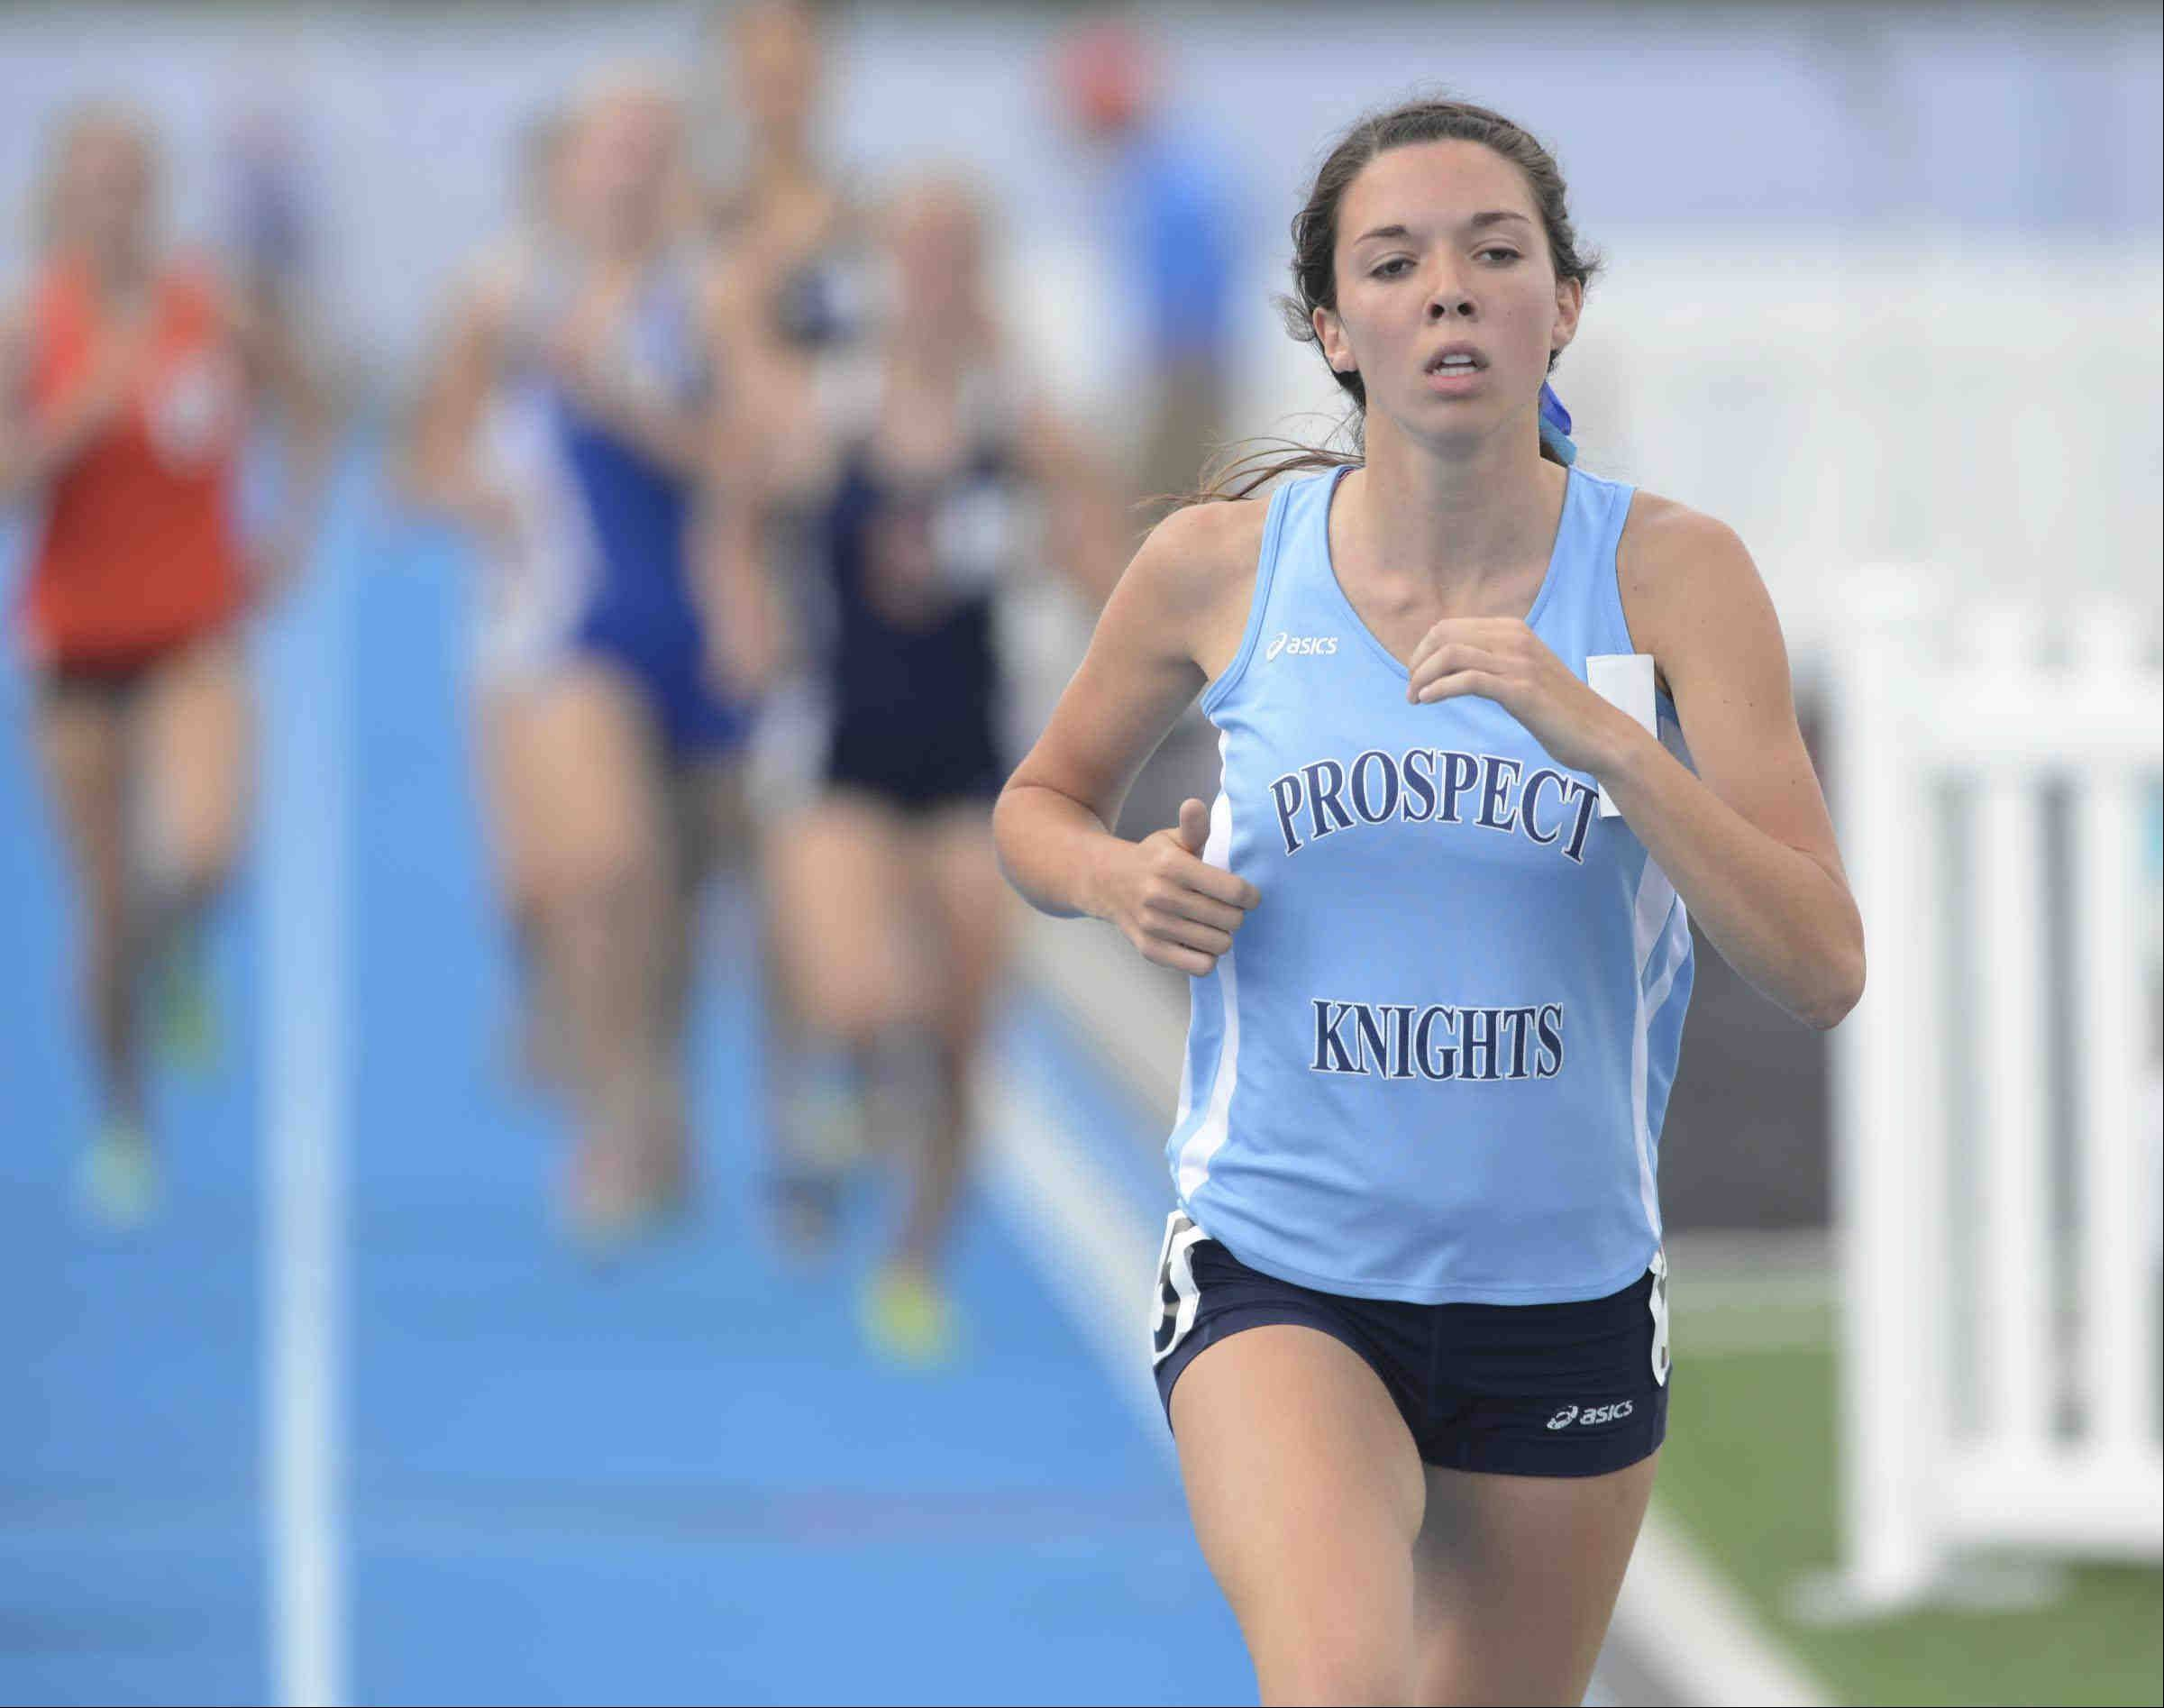 Prospect's Christina Santiago takes third in the 1,600-meter run in the Class 3A girls track and field state finals on Saturday in Charleston.